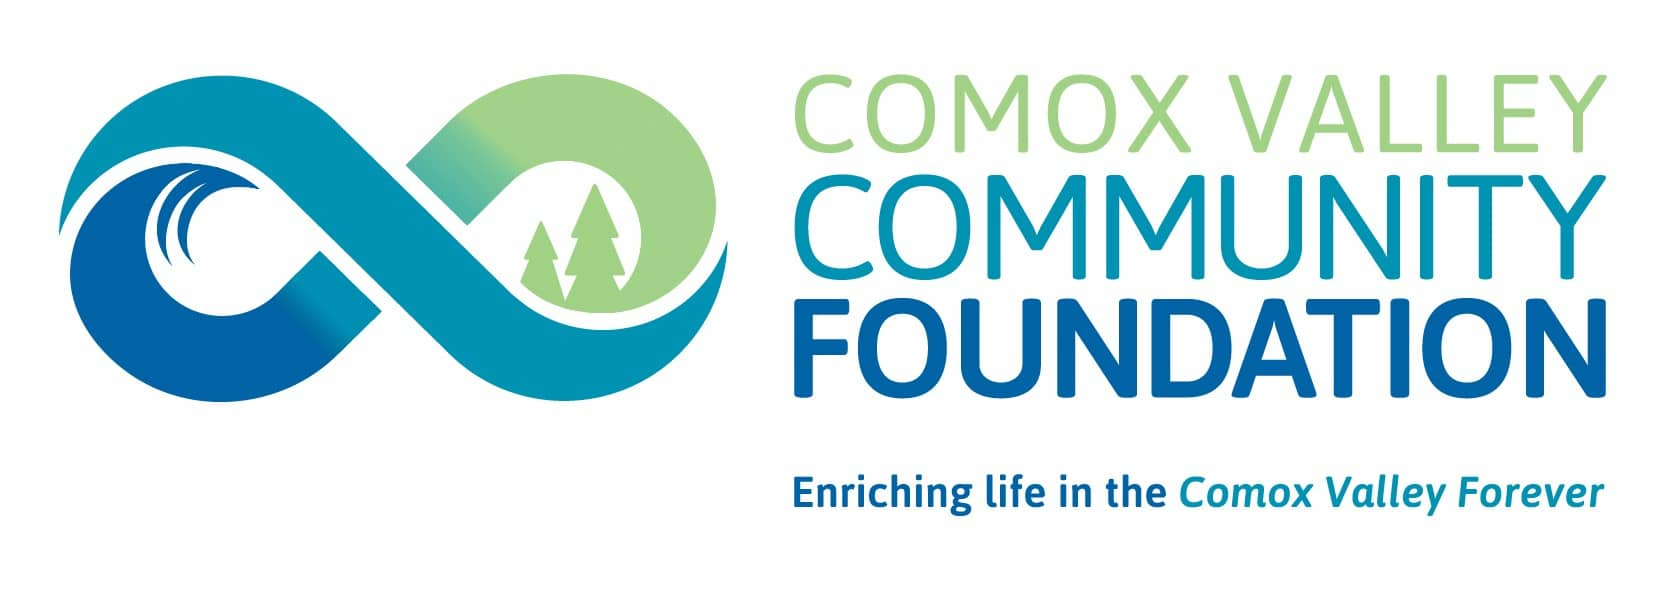 Comox Valley Community Foundation